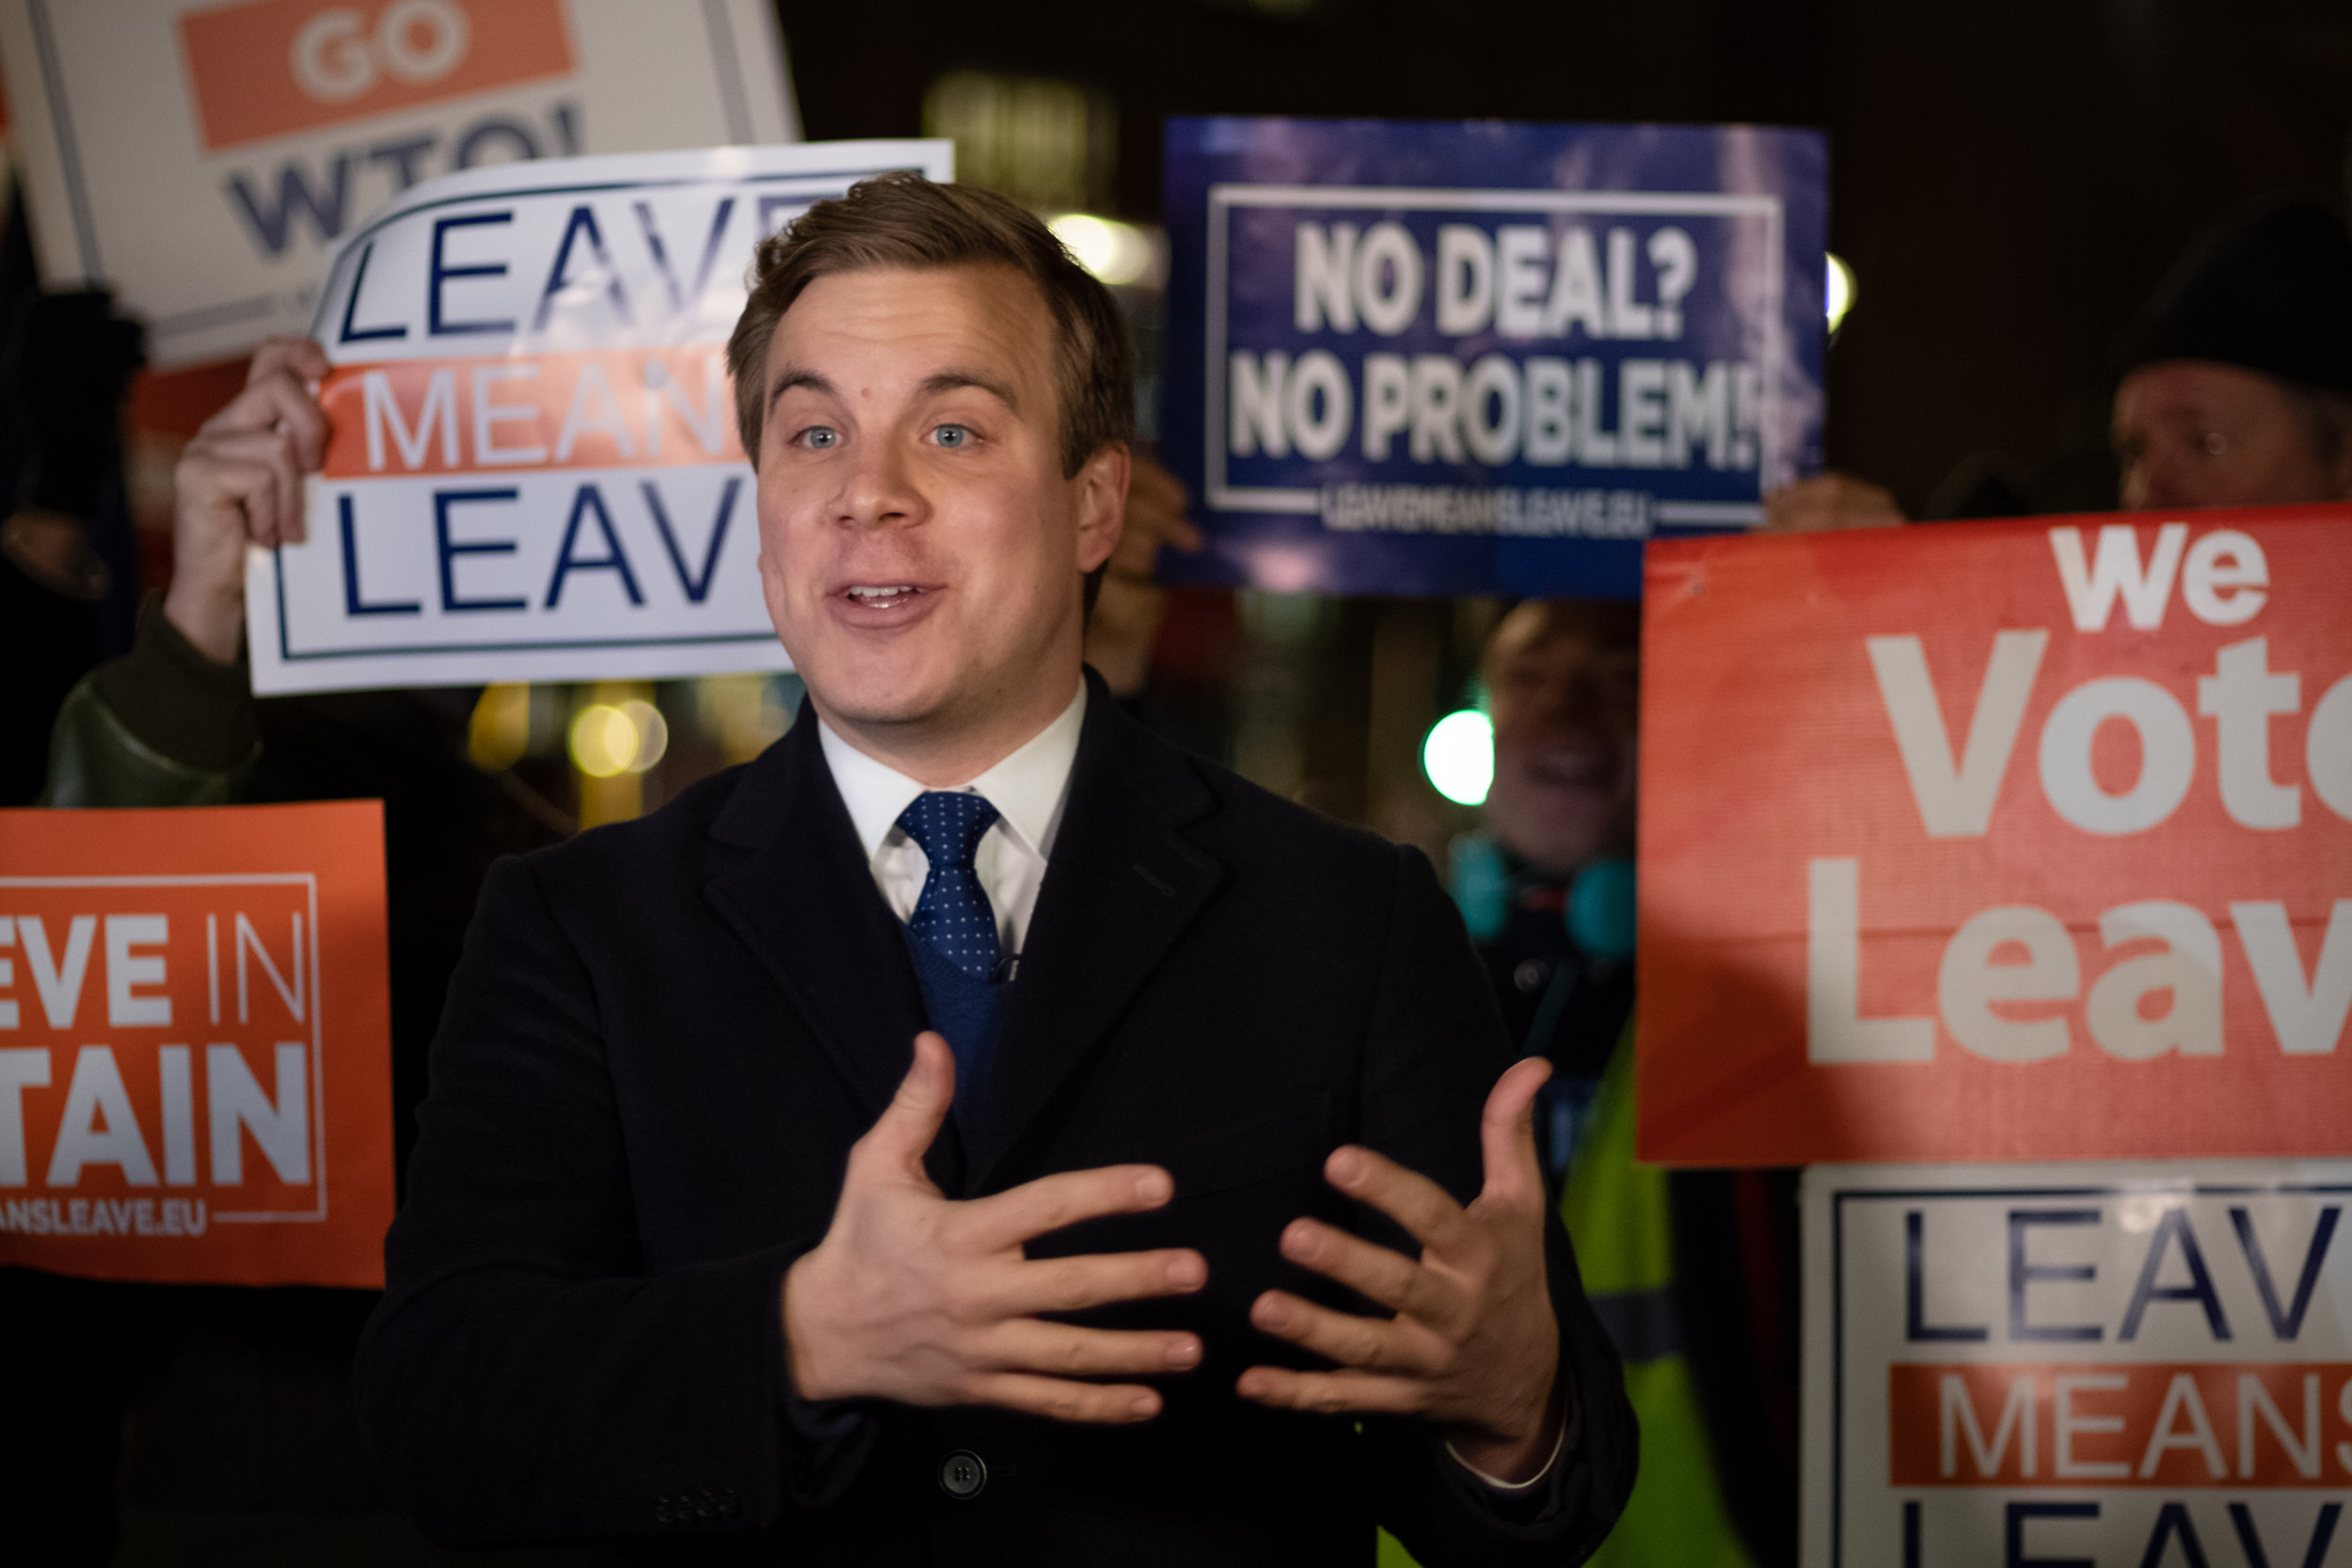 While the Final Vote on Theresa`s May Brexit Deal is ongoing, reporters broadcast the protest outside the House of Parliament, on the 15th January 2019, in London, UK.